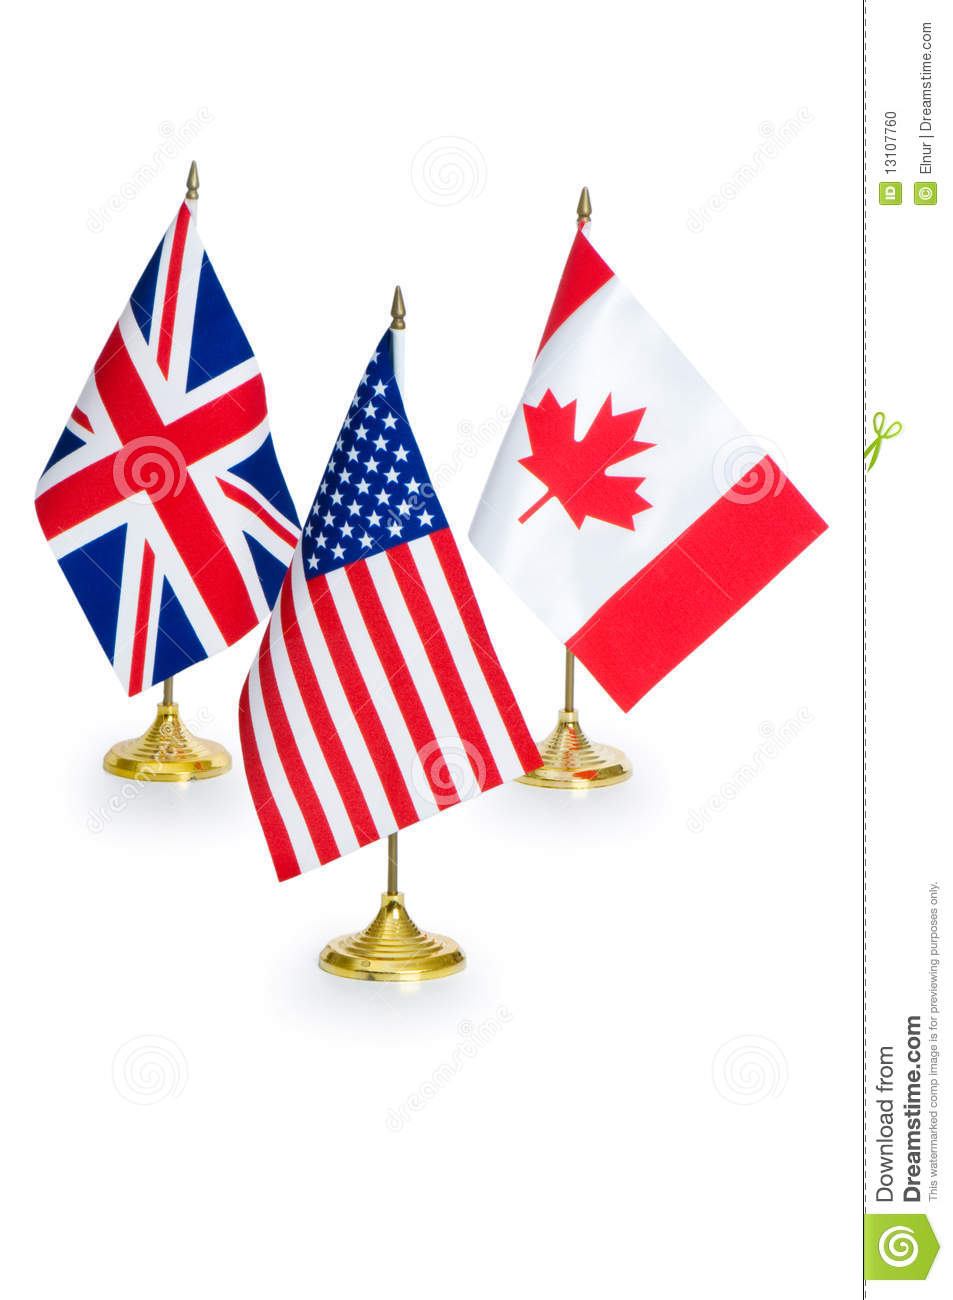 English Speaking Countries Flags Isolated Stock Photo - Image ...